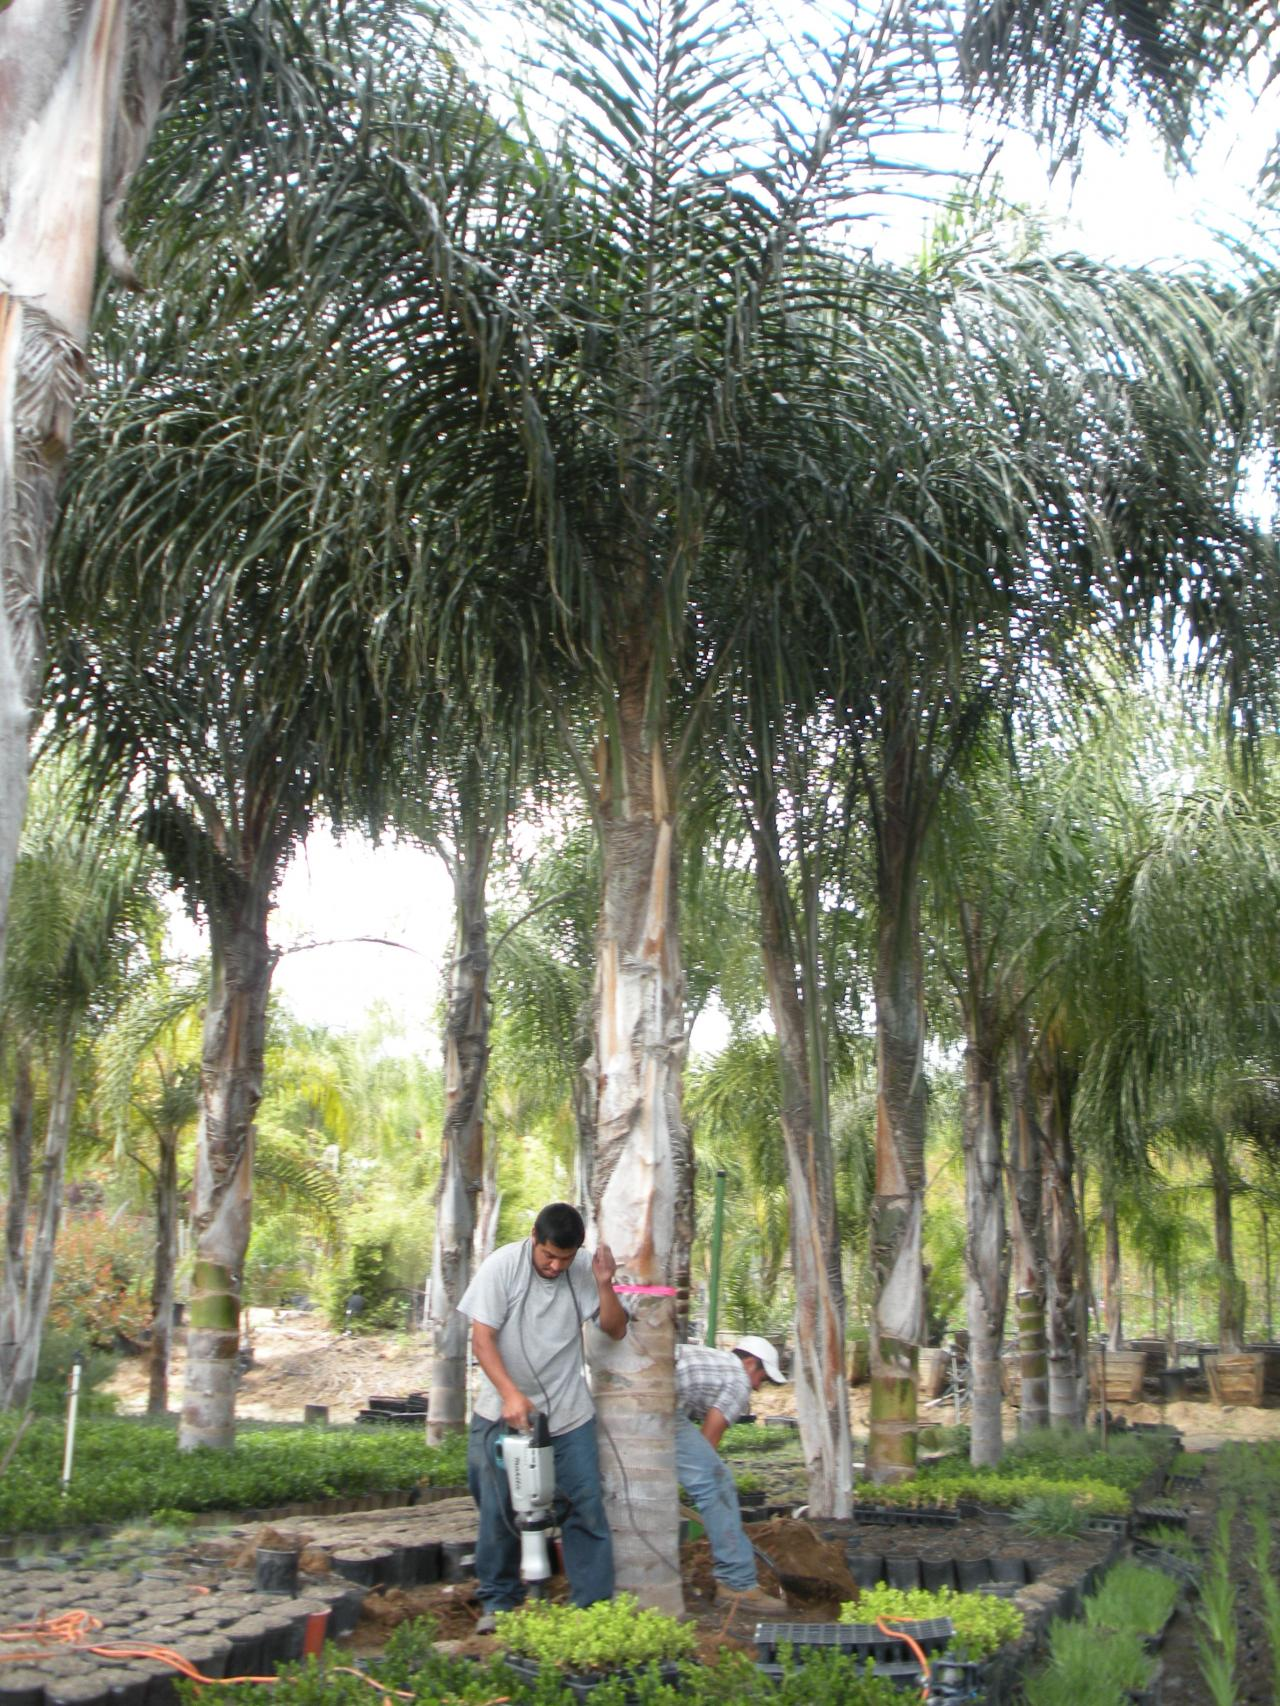 With you mature palm tree accept